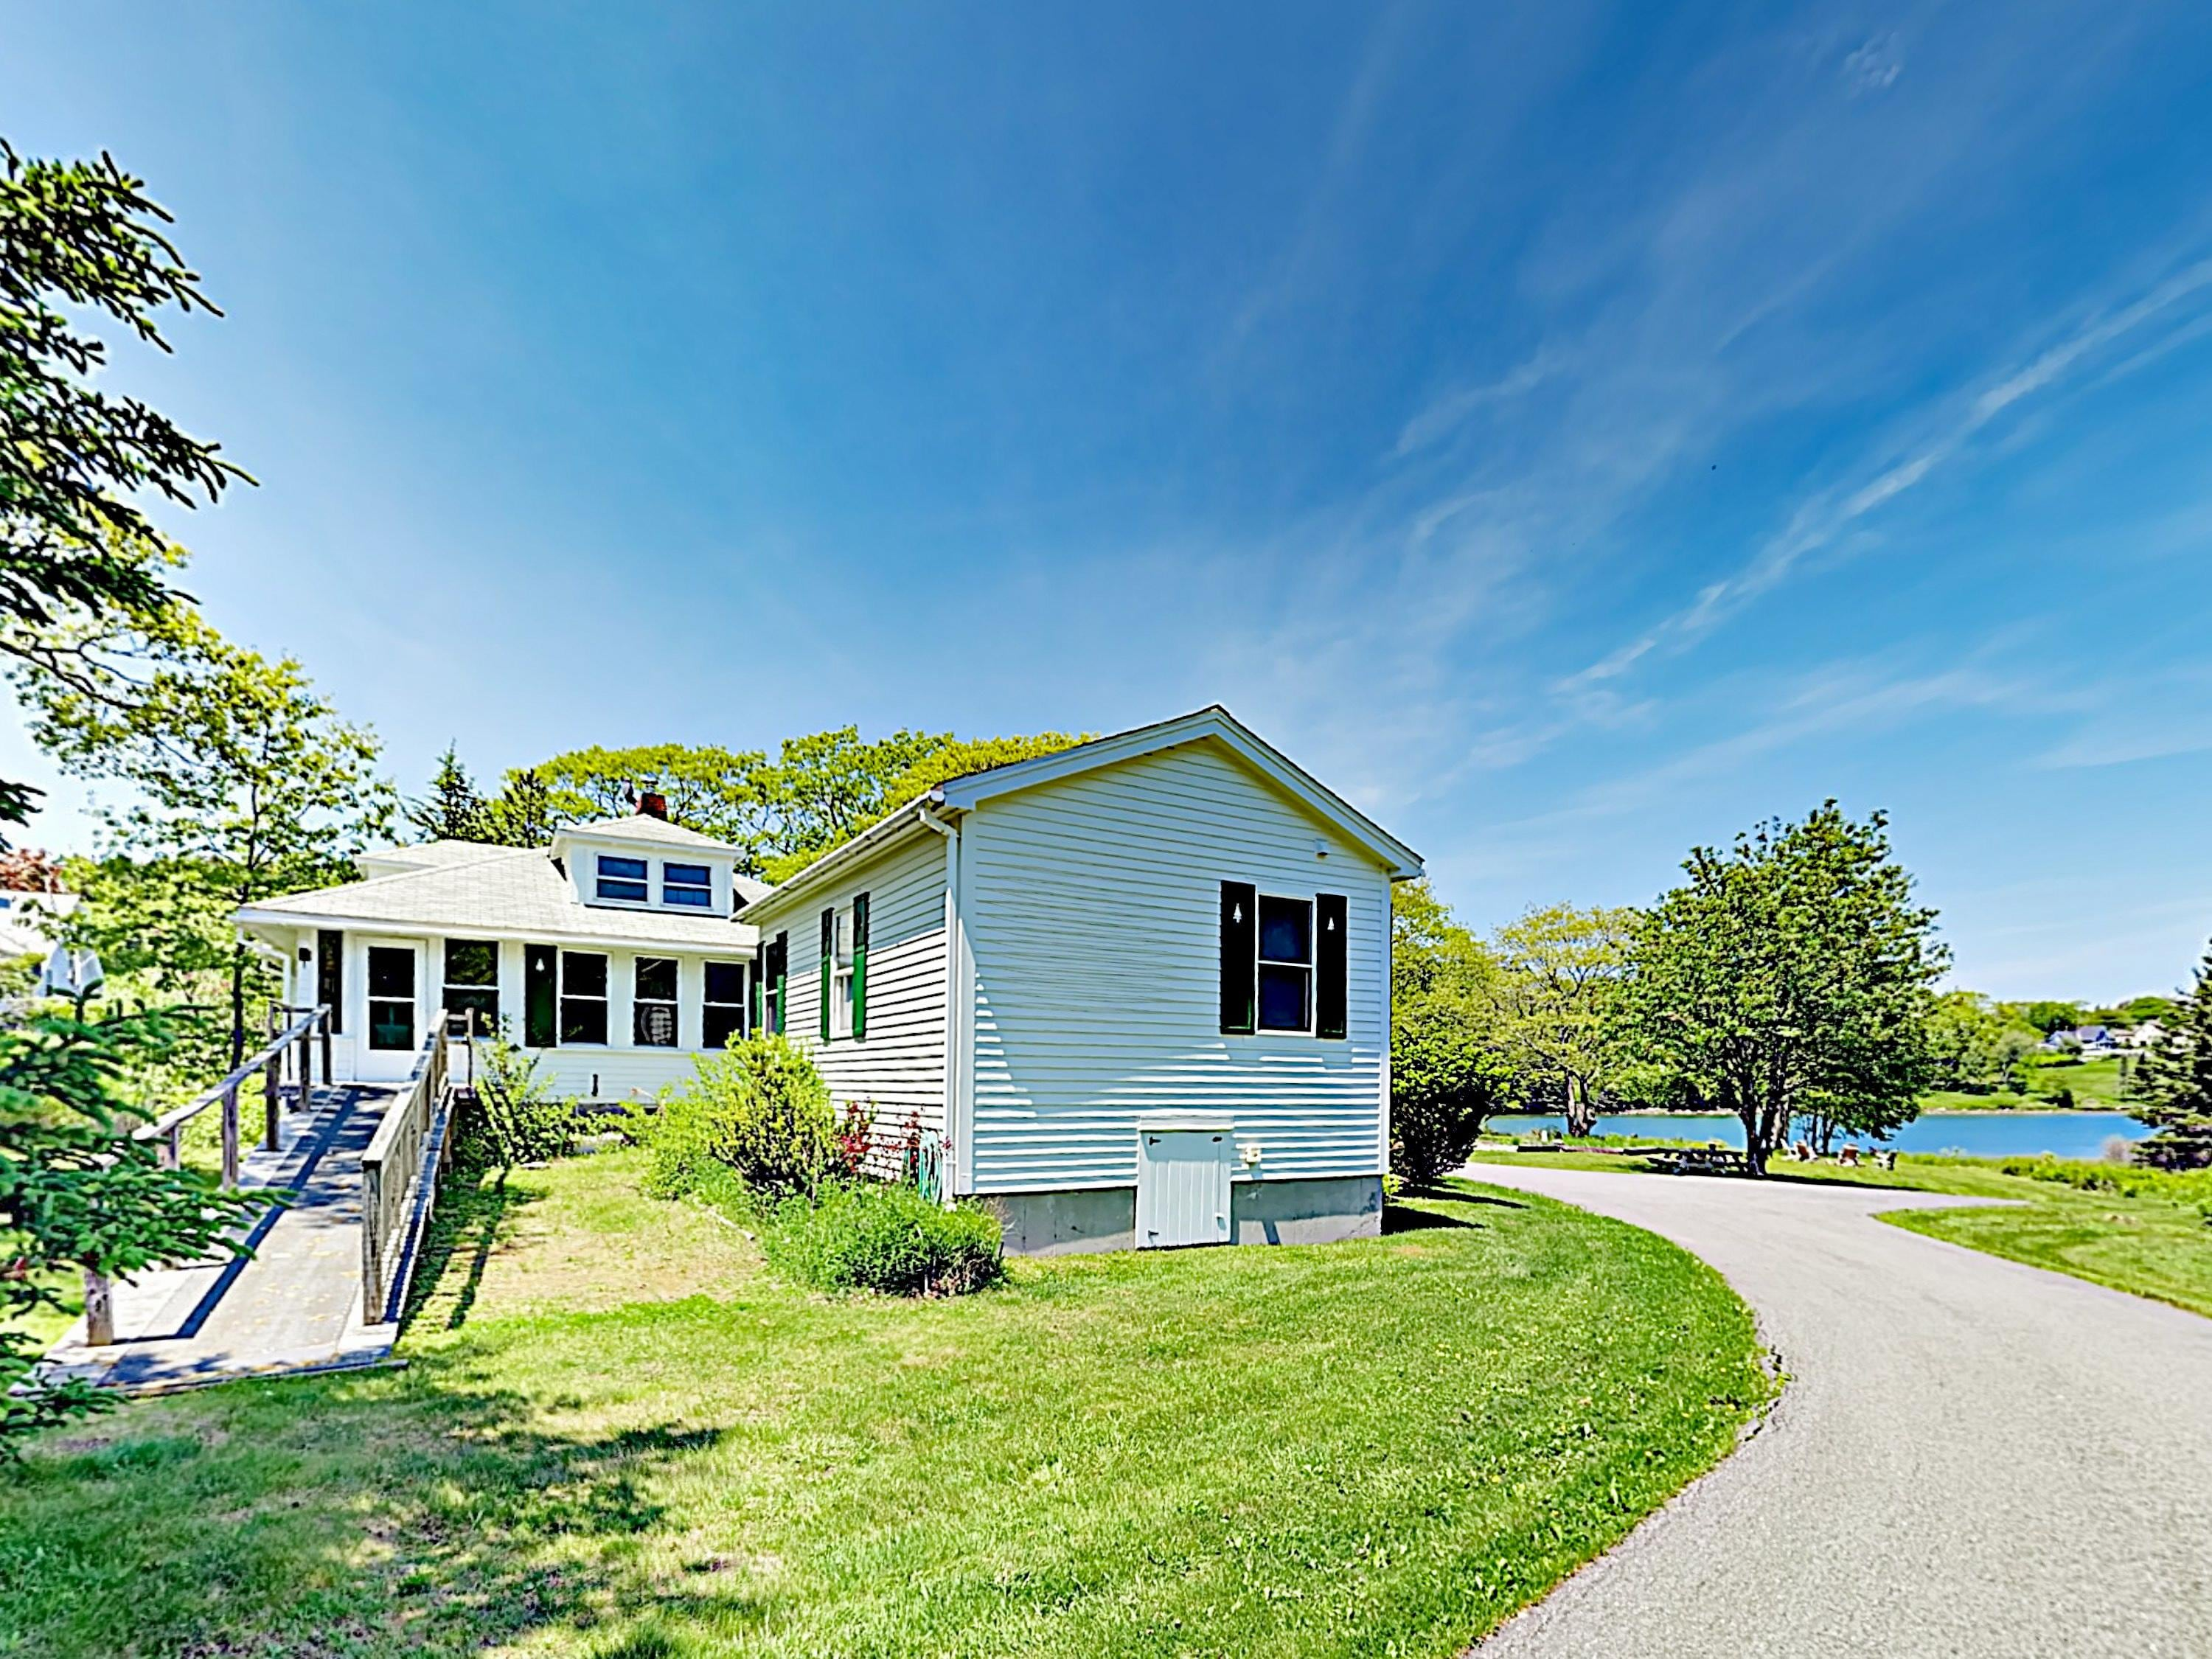 Plan a relaxing seaside escape to this 3BR/2BA waterfront home in East Boothbay.